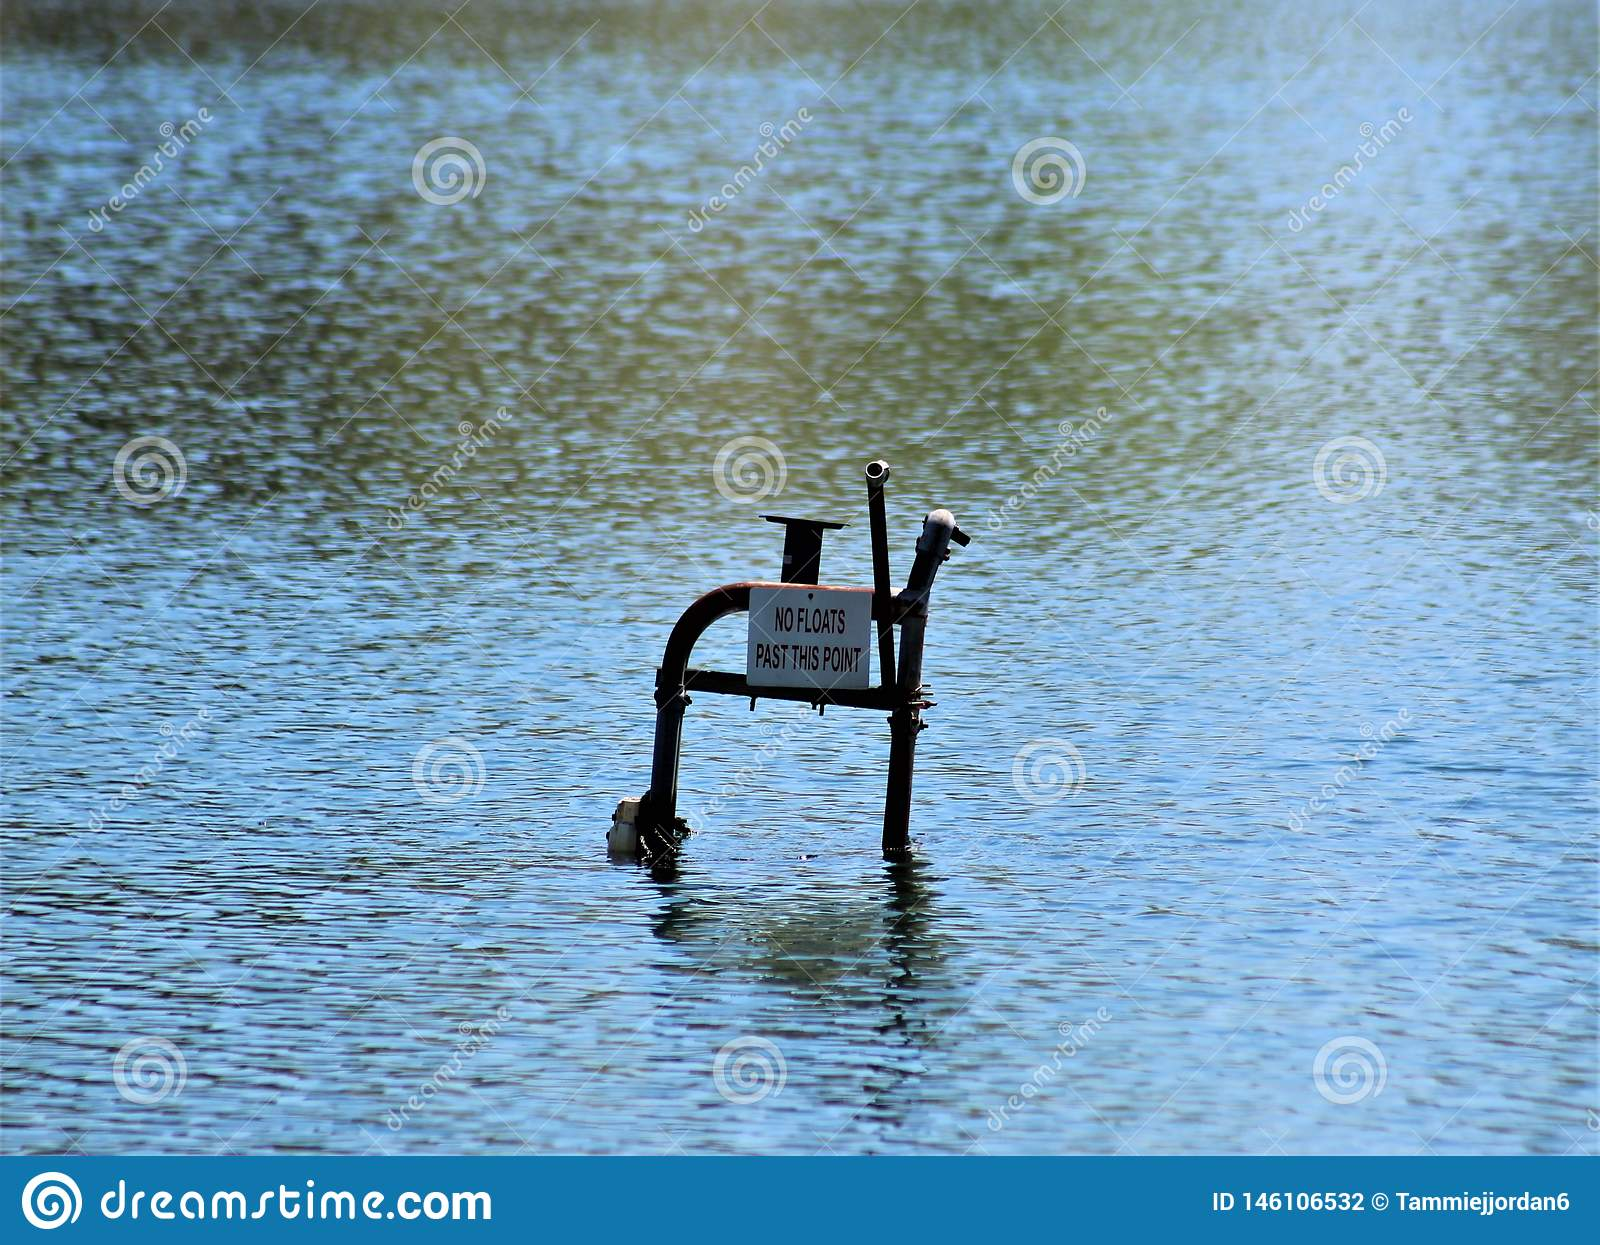 Abandoned Lifeguard`s Chair Sinking into the Lake